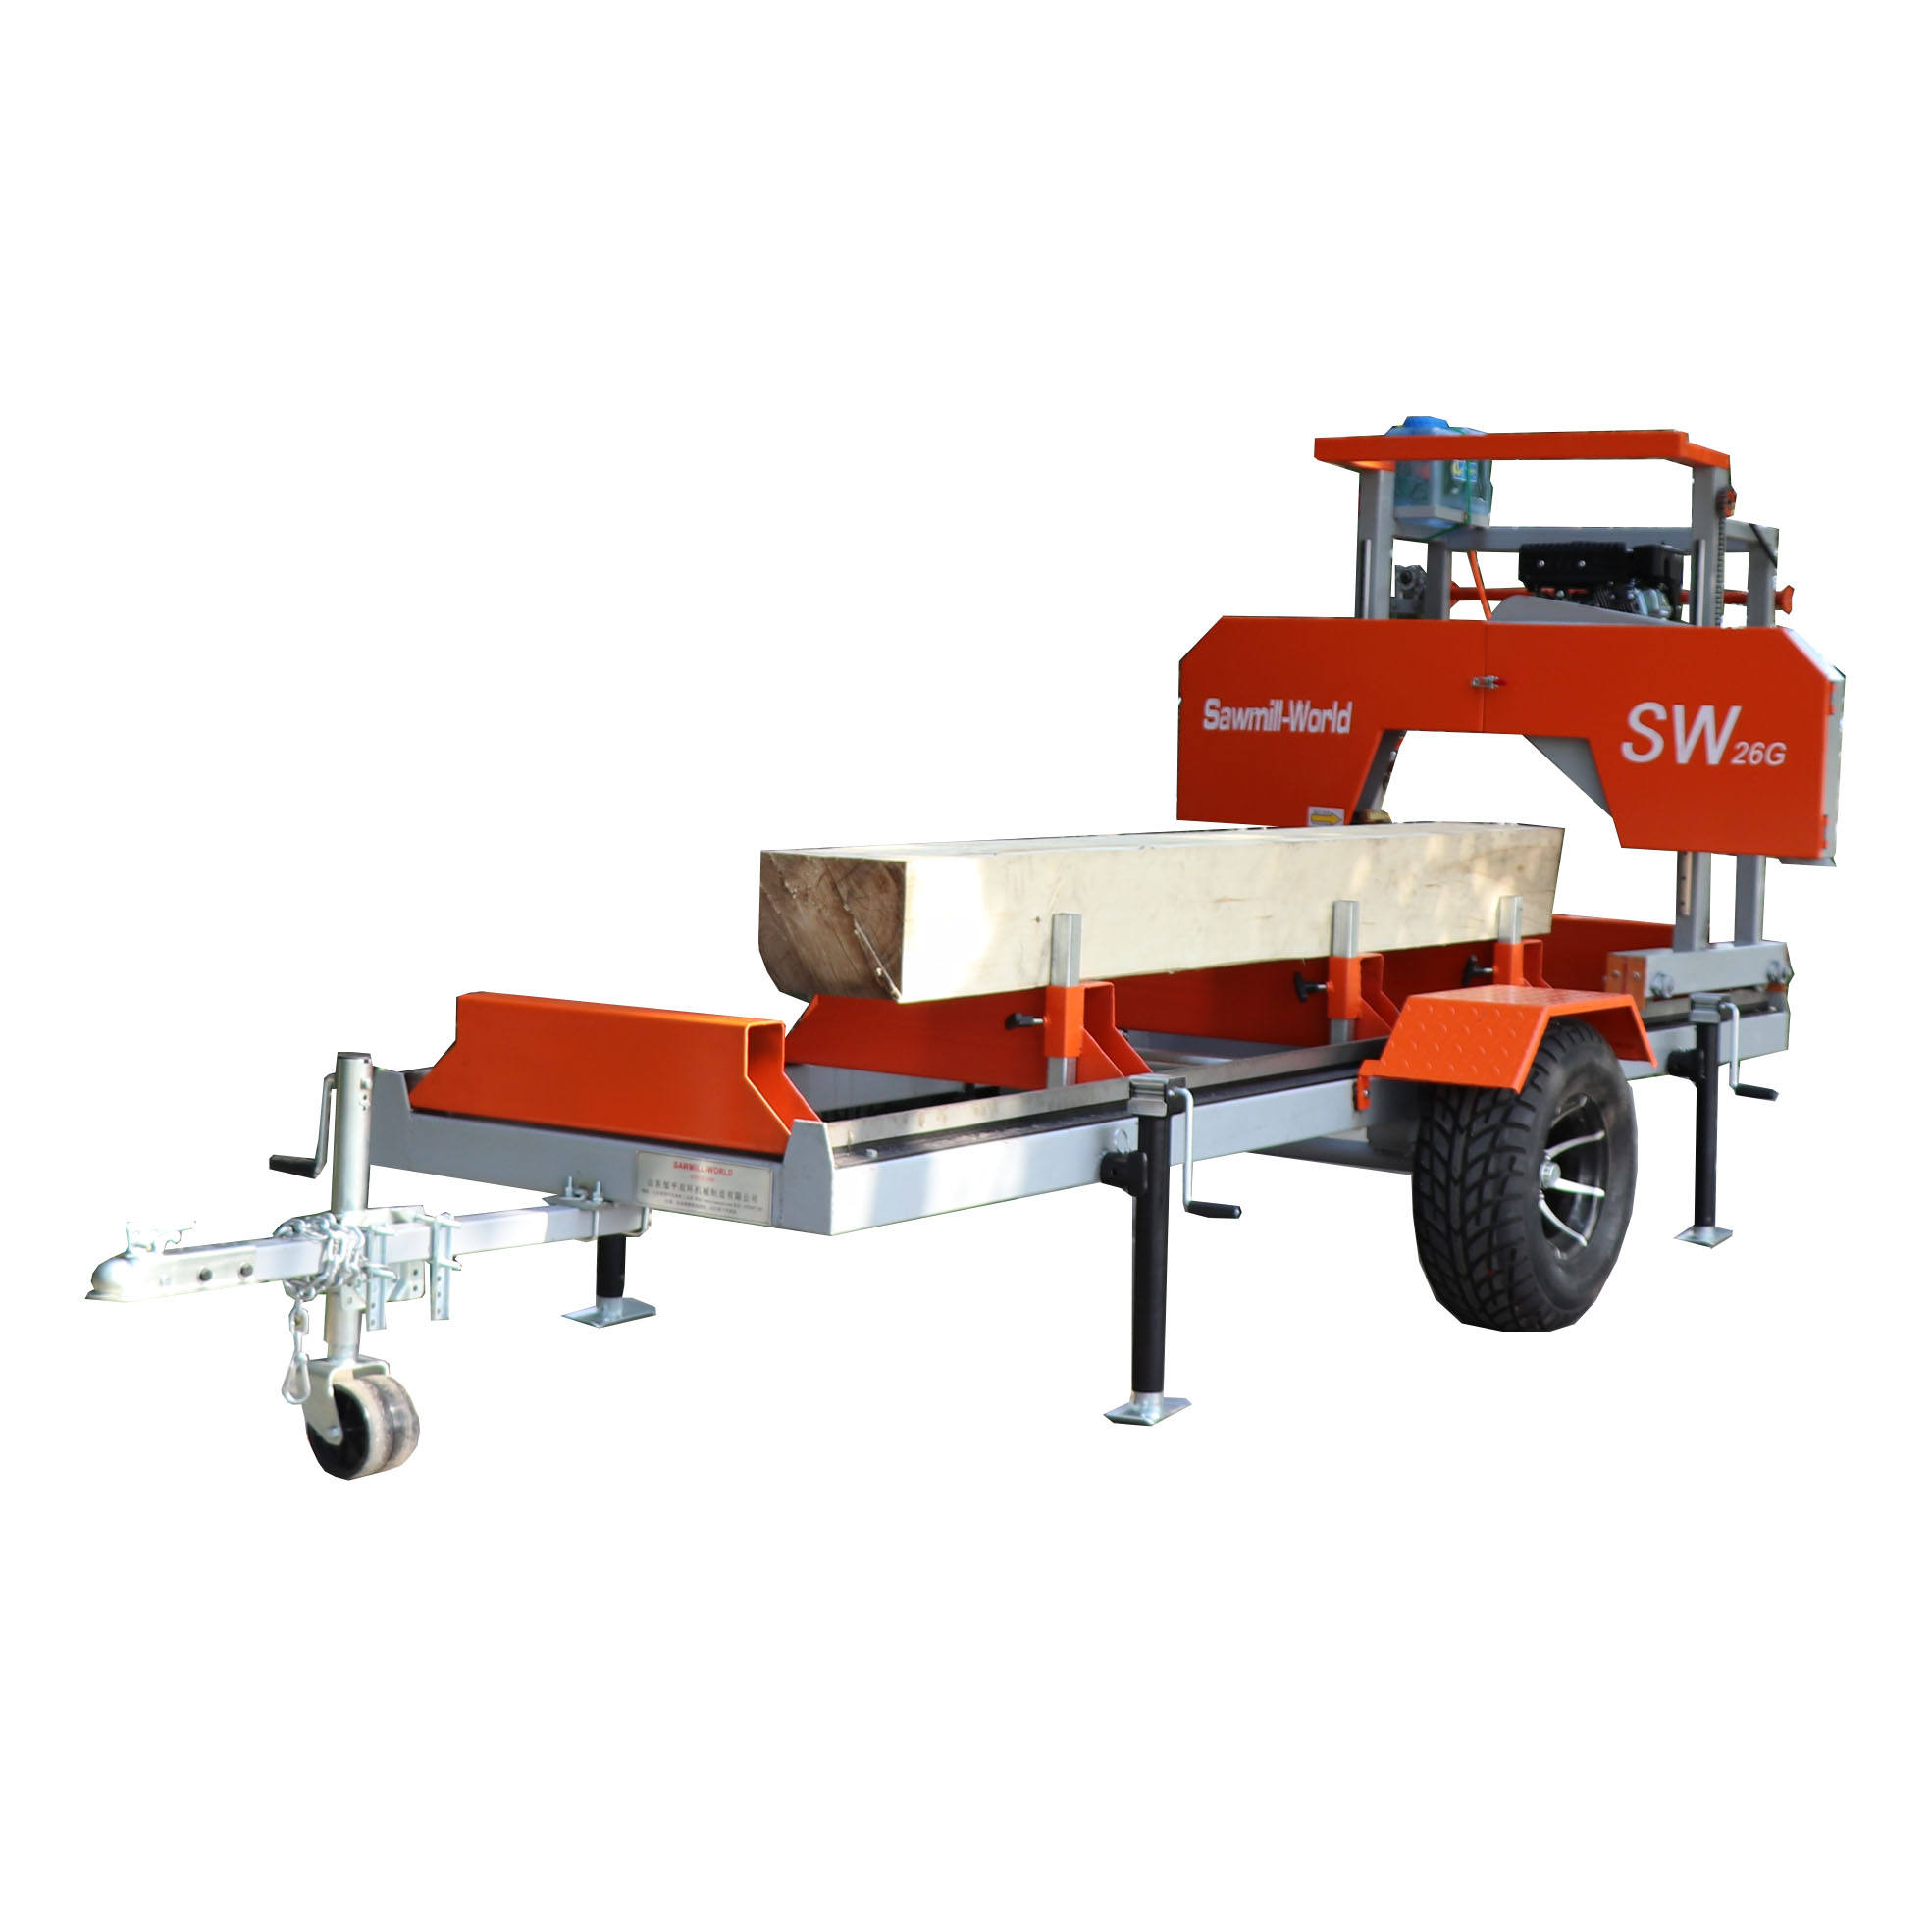 SW26G Portable Band Sawmill Machine For Wood Cutting